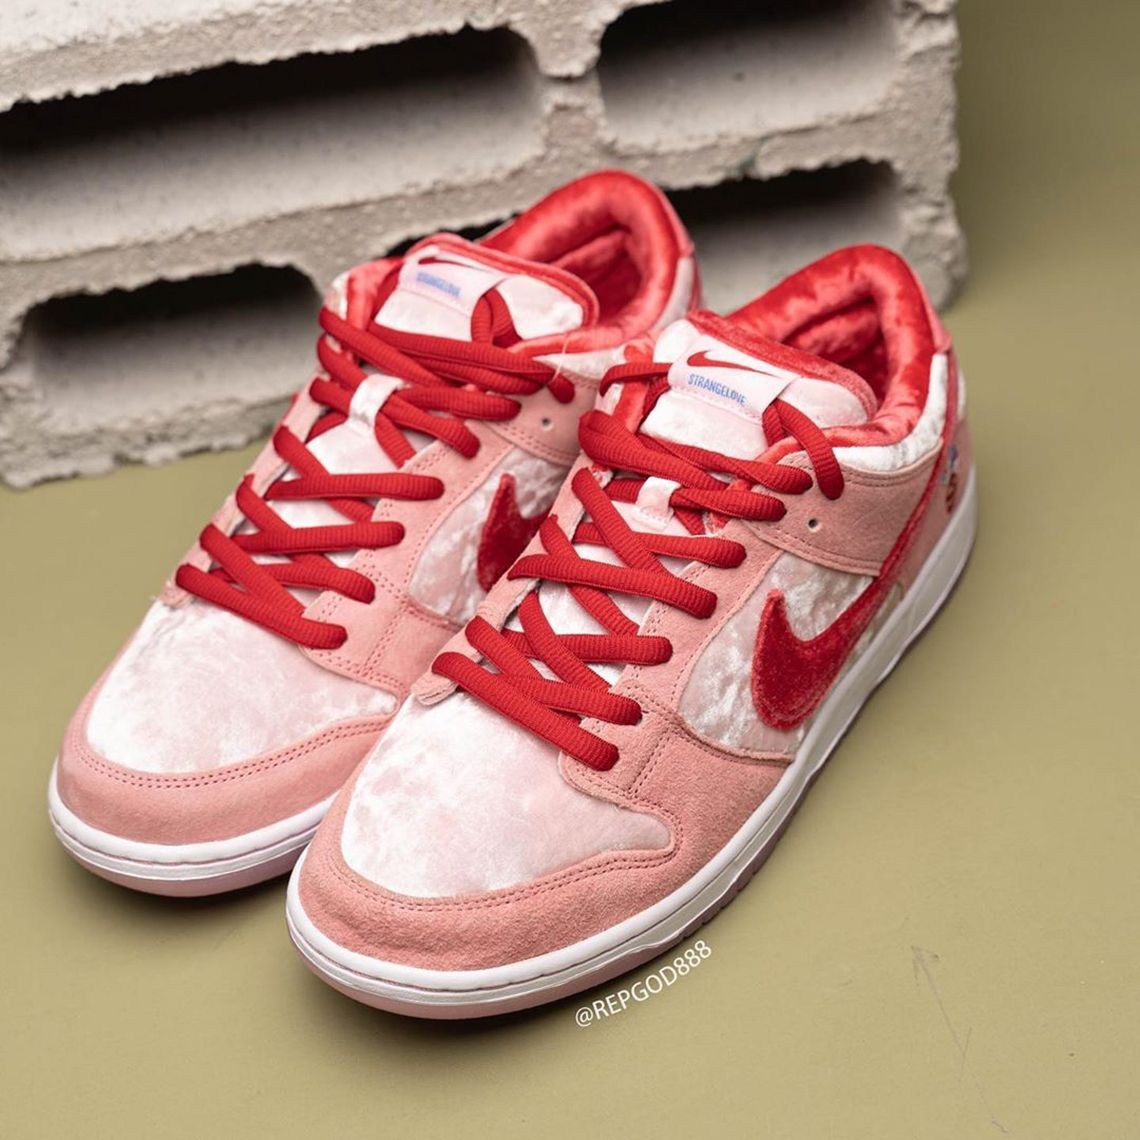 Detailed Look At The StrangeLove Skateboards x Nike SB Dunk